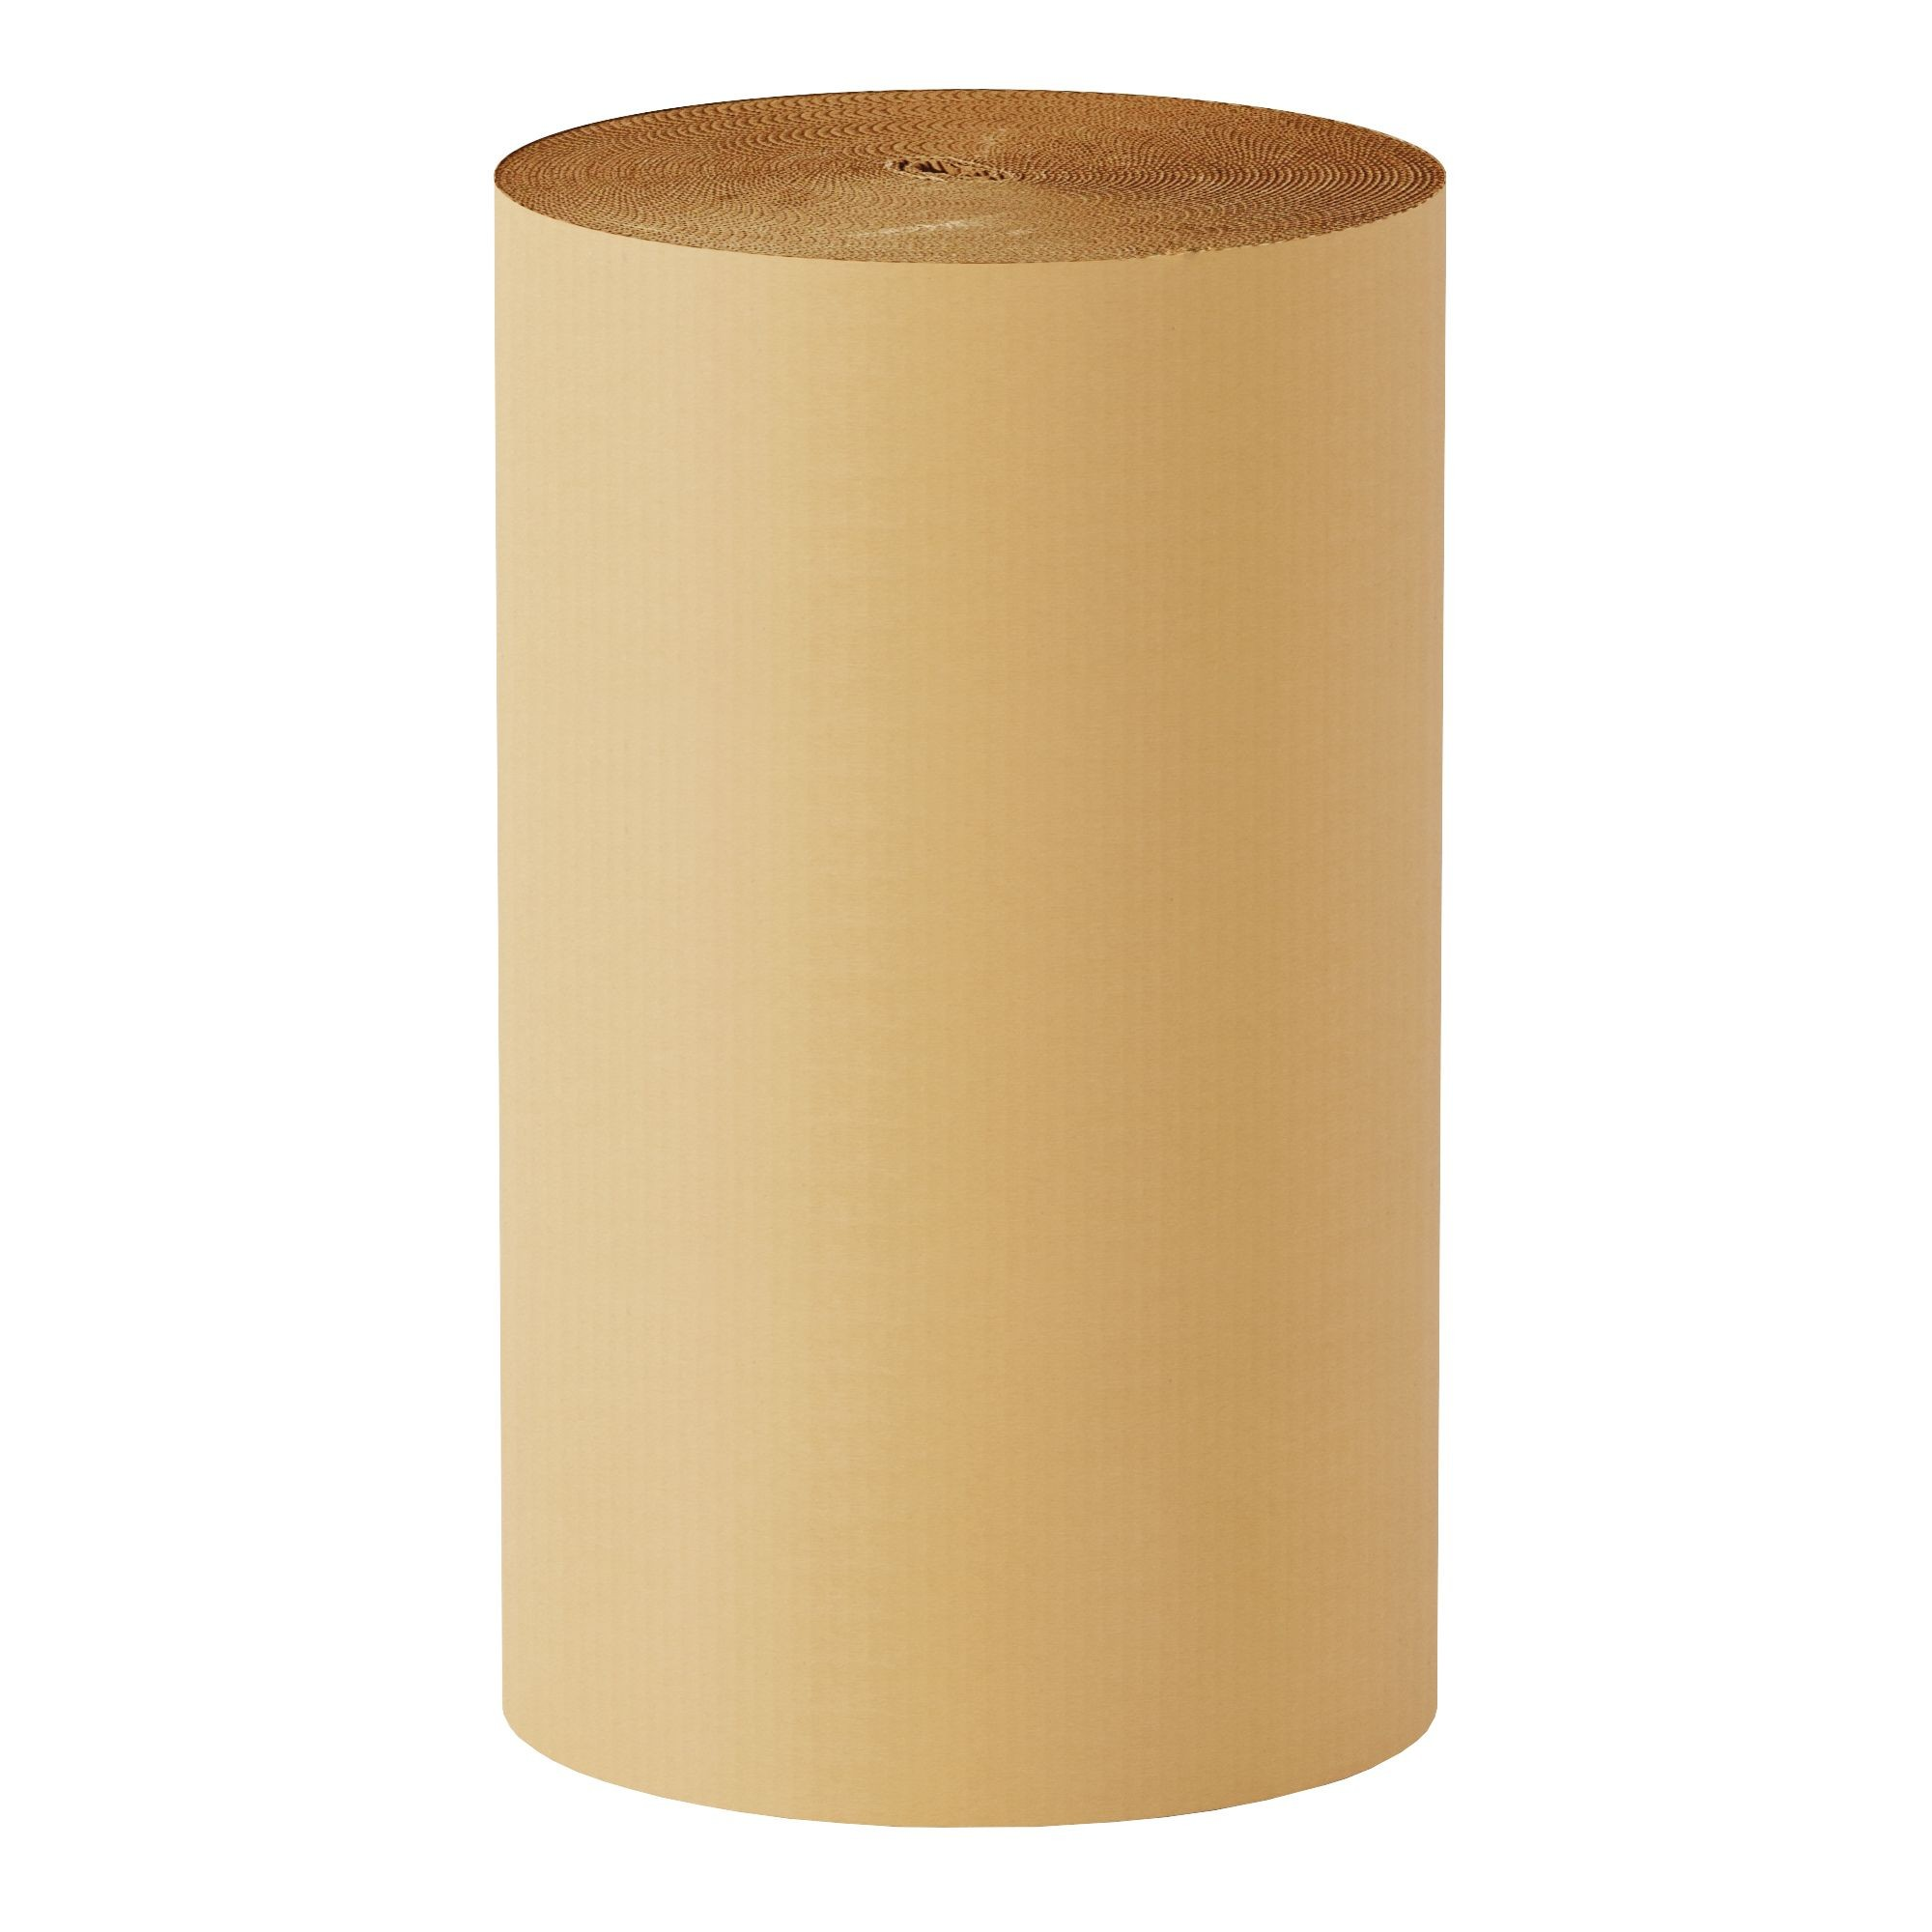 TOTALPACK® Ultra-Strong Corrugated Roll, Cardboard Corrugated